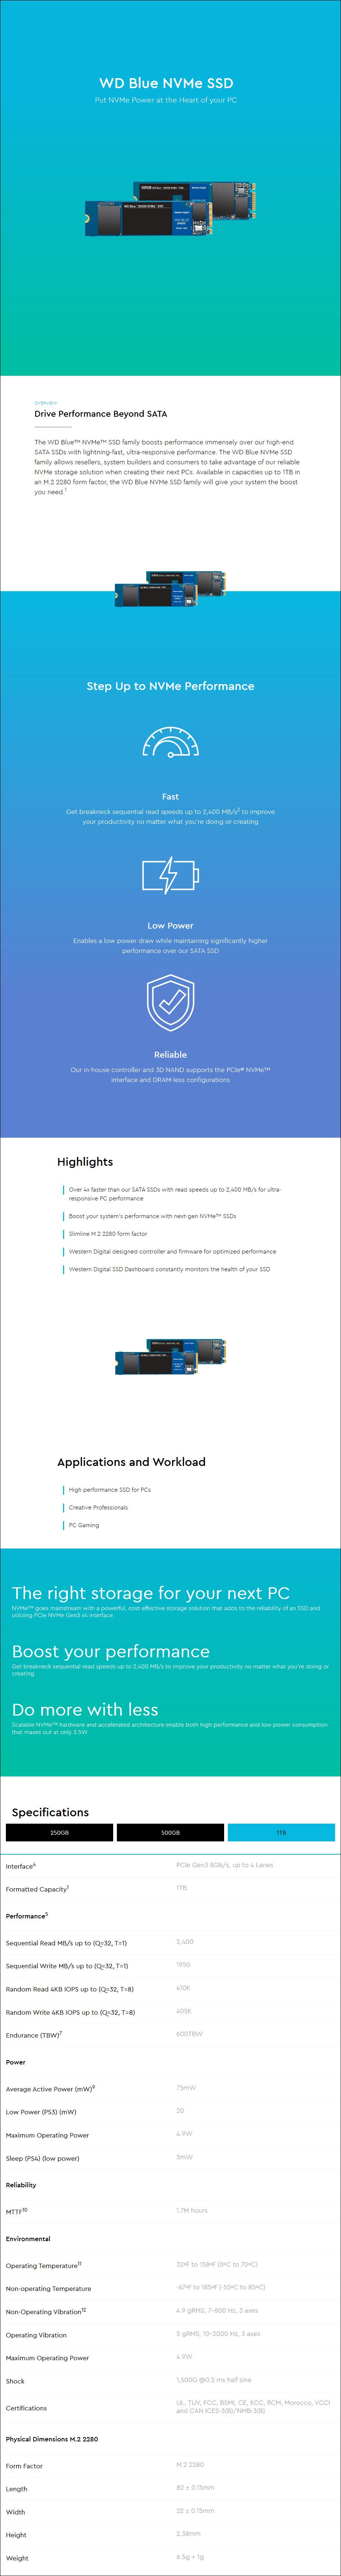 WD Blue SN550 1TB M.2 2280 NVMe SSD WDS100T2B0C - Overview 1